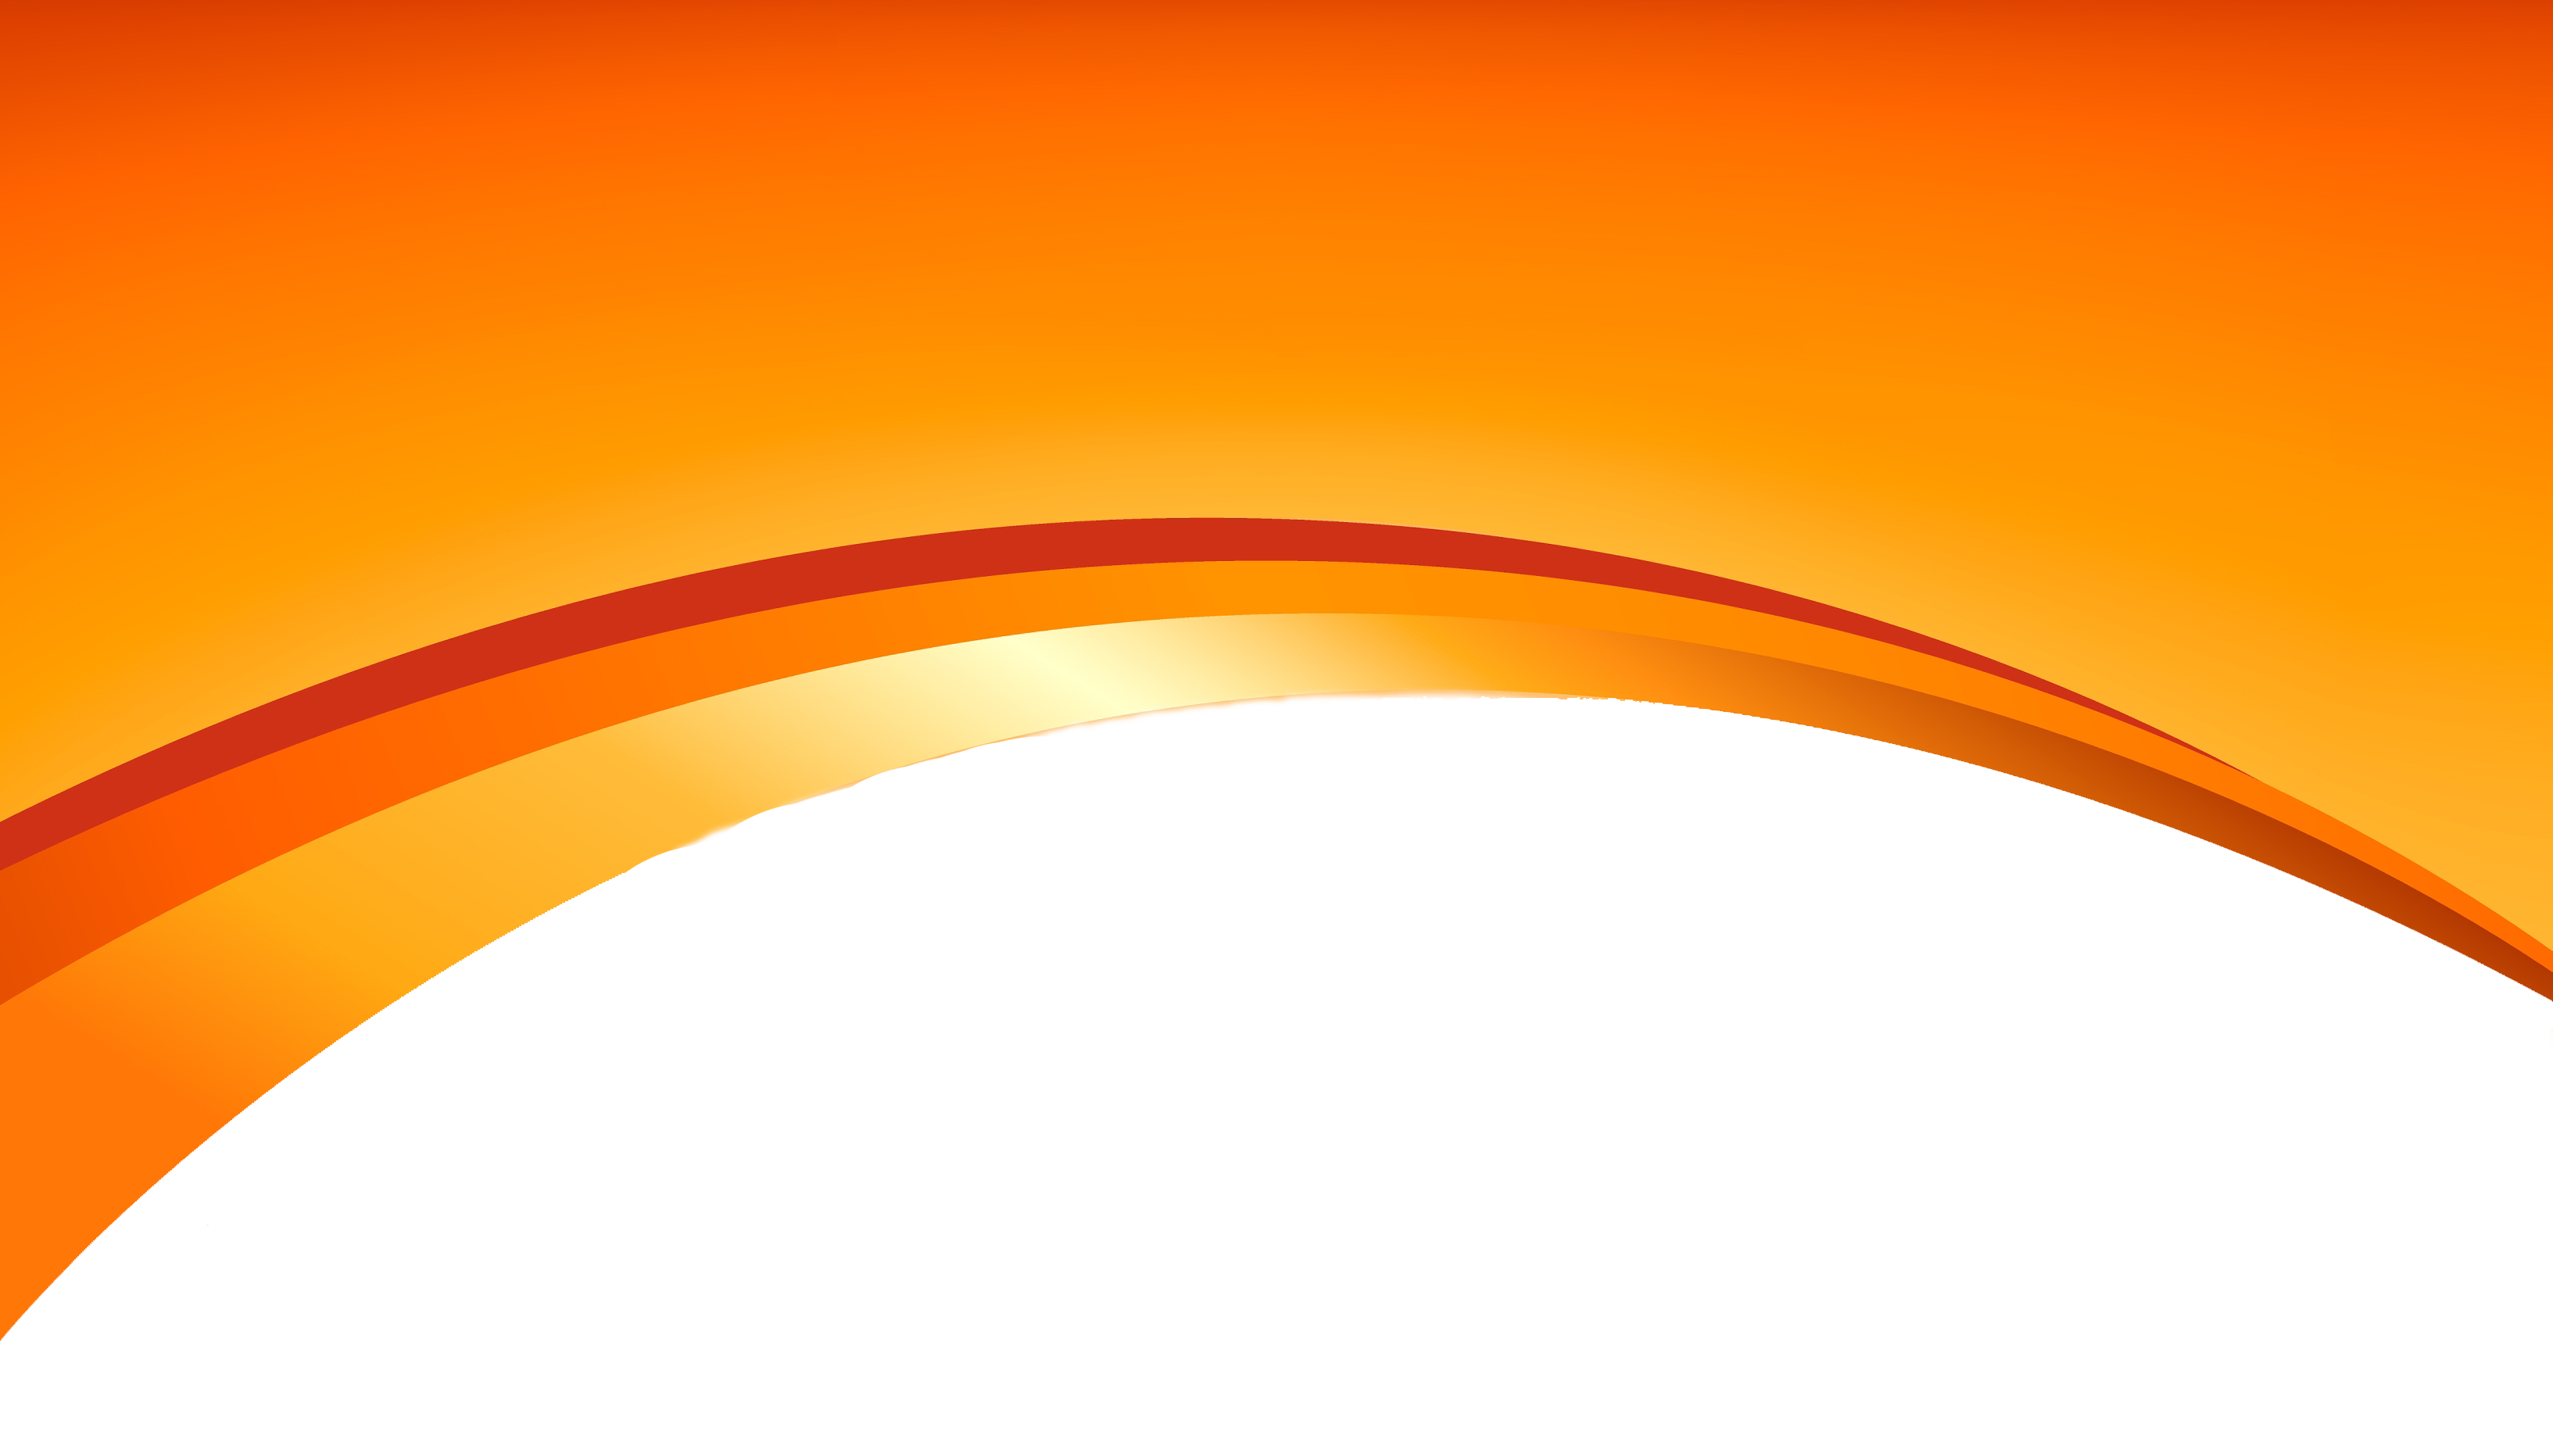 Cool png backgrounds. Orange abstract lines transparent